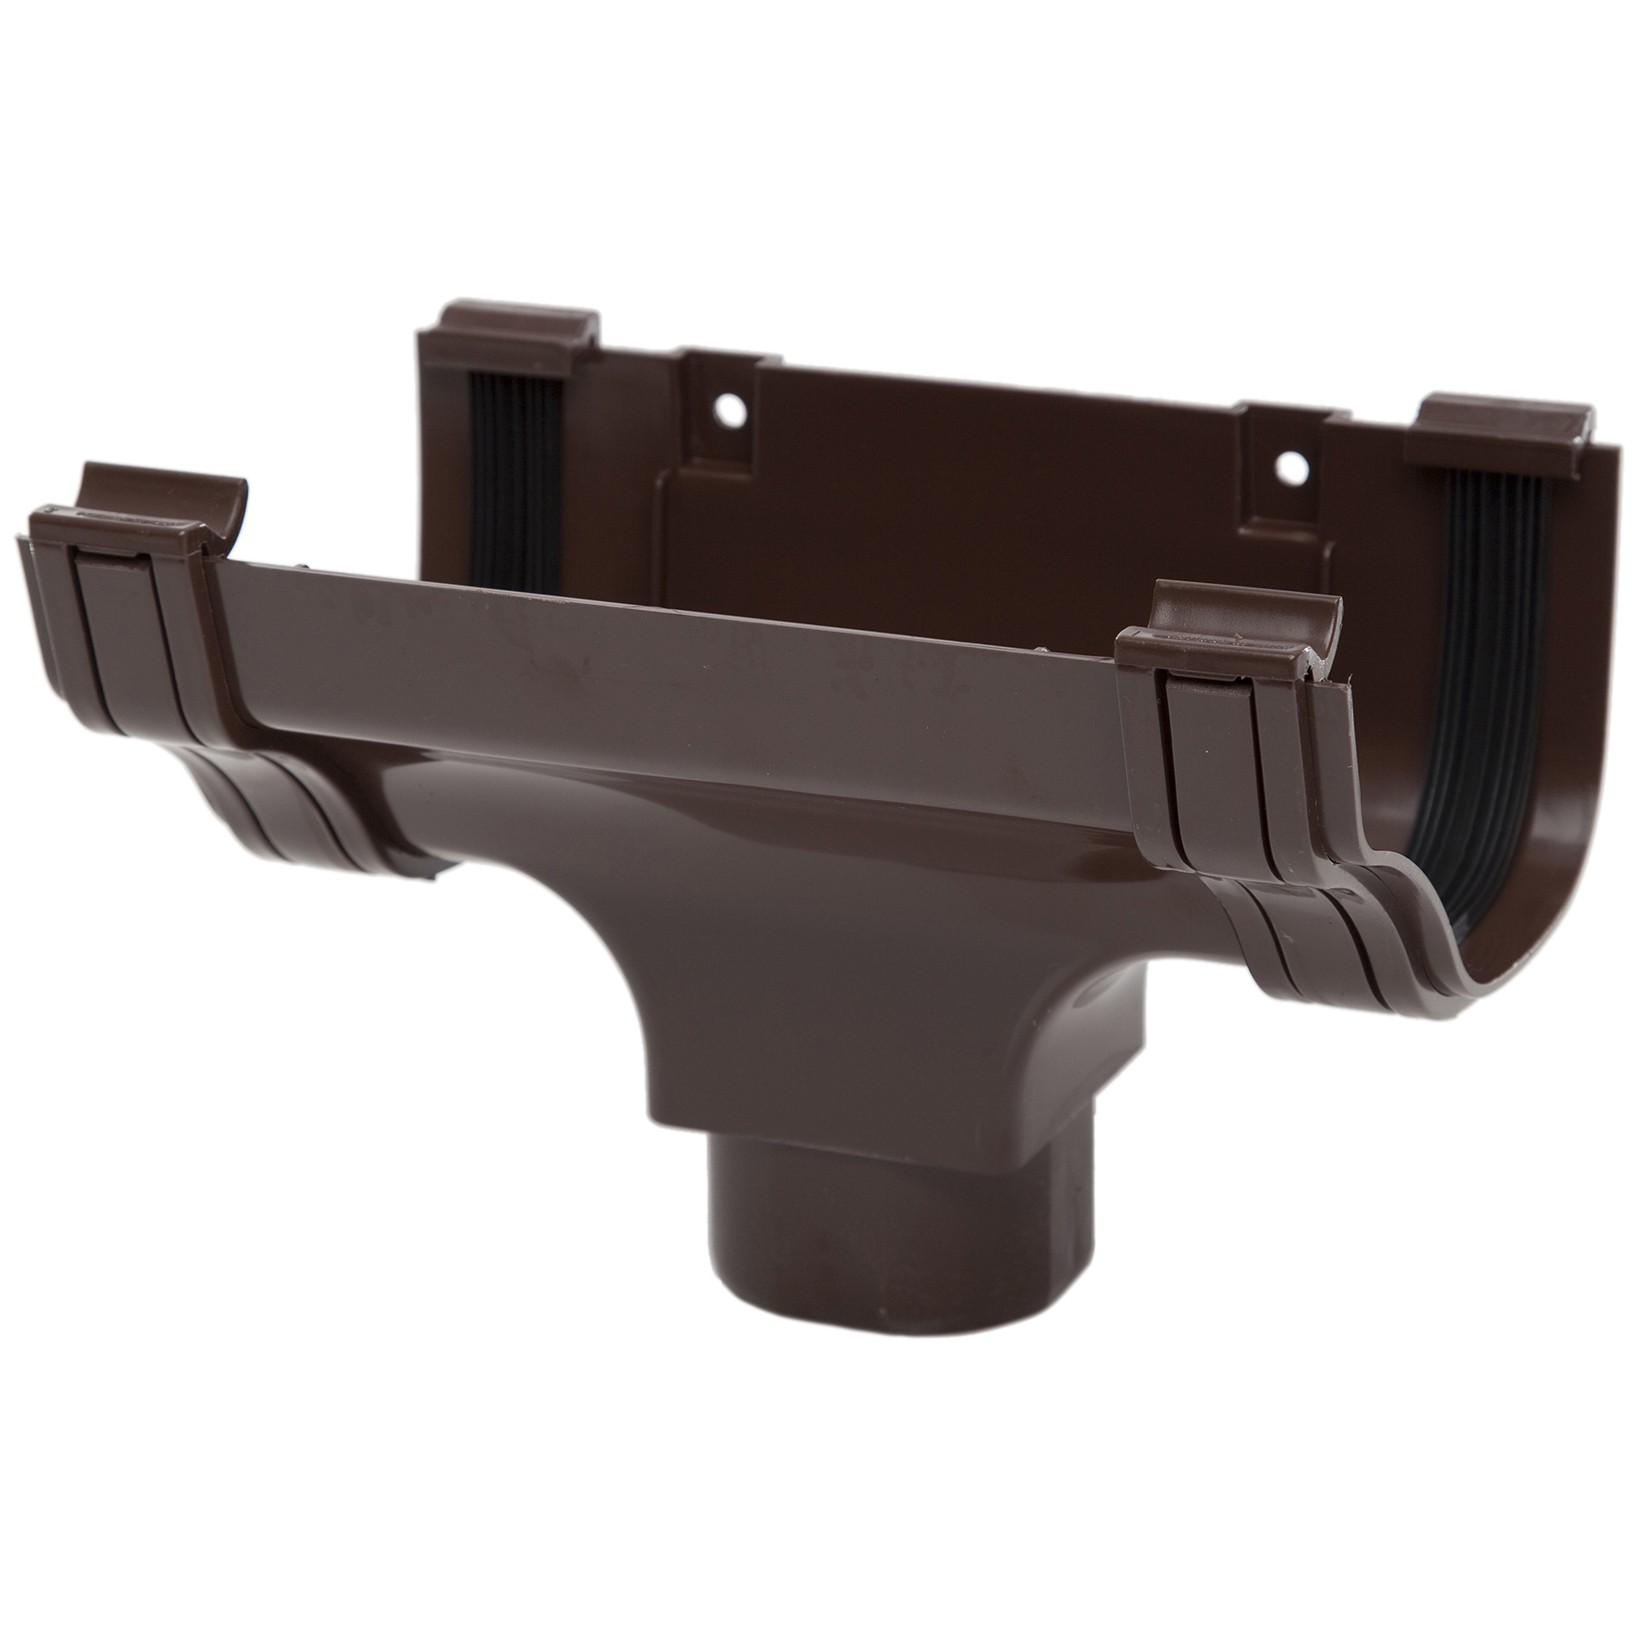 Polypipe 130mm Ogee Extra Capacity Gutter Running Outlet - Brown